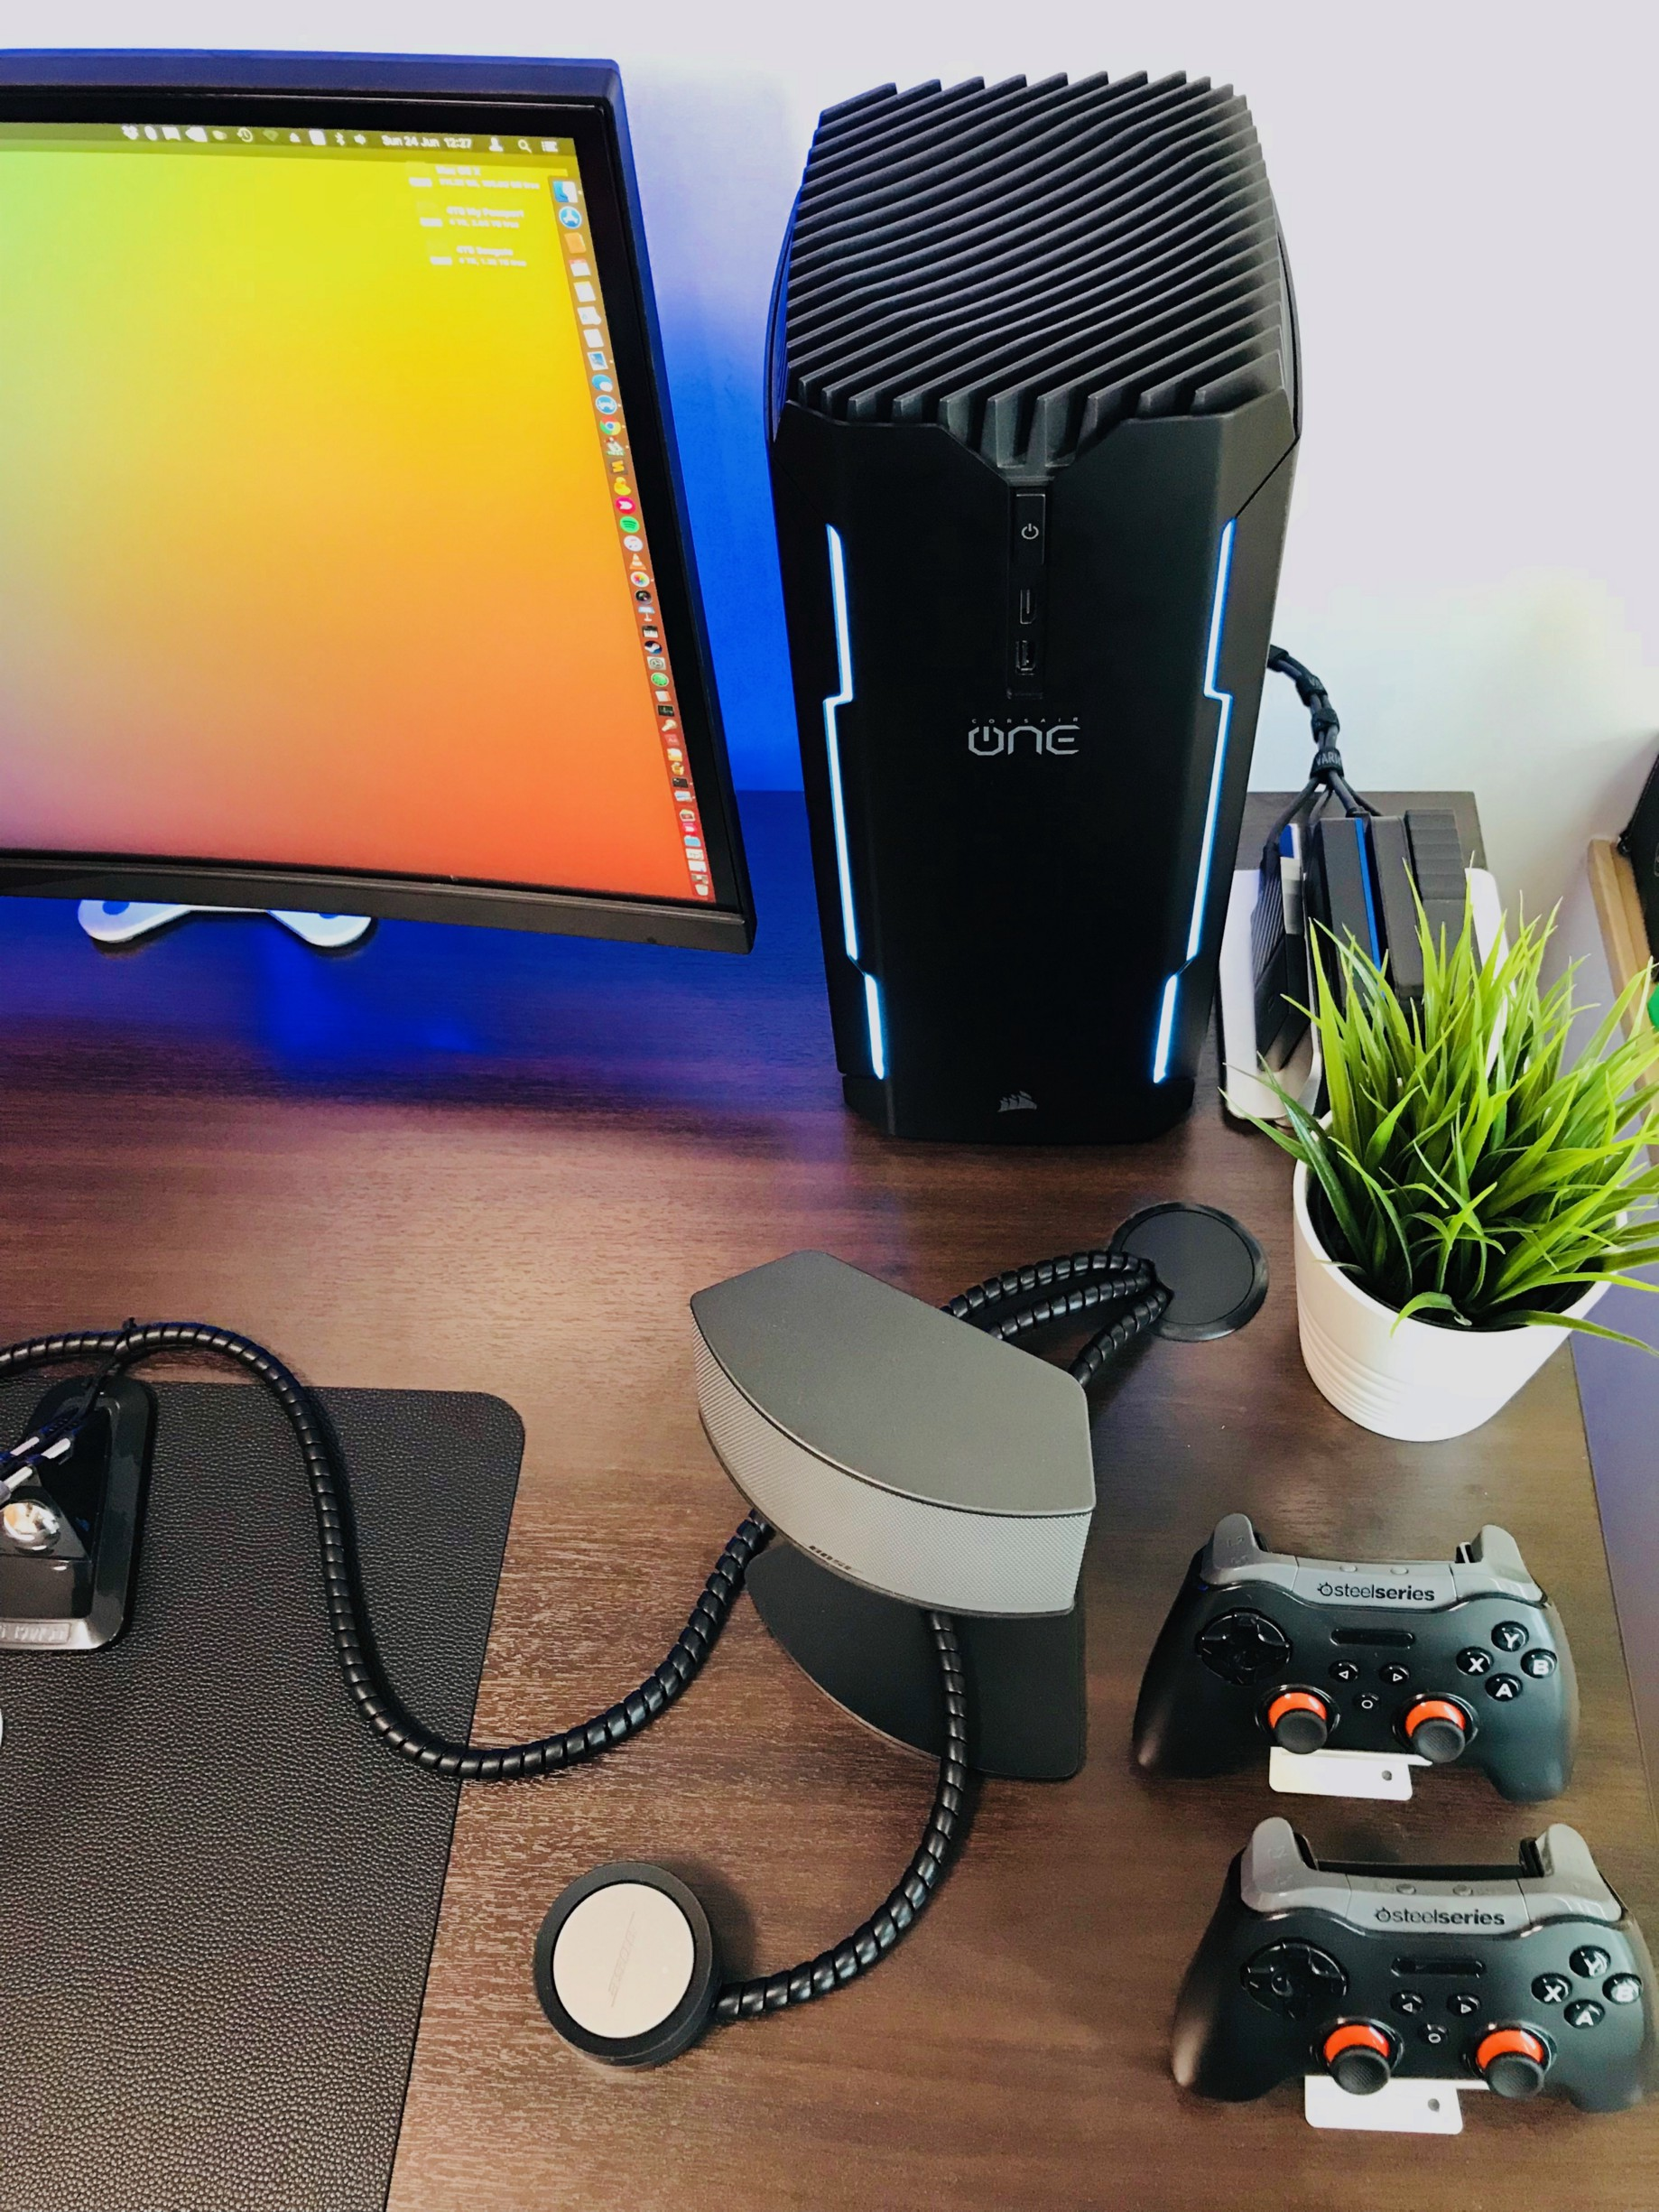 MacOS High Sierra on Corsair One Pro - Le Nguyen The Dat - Medium